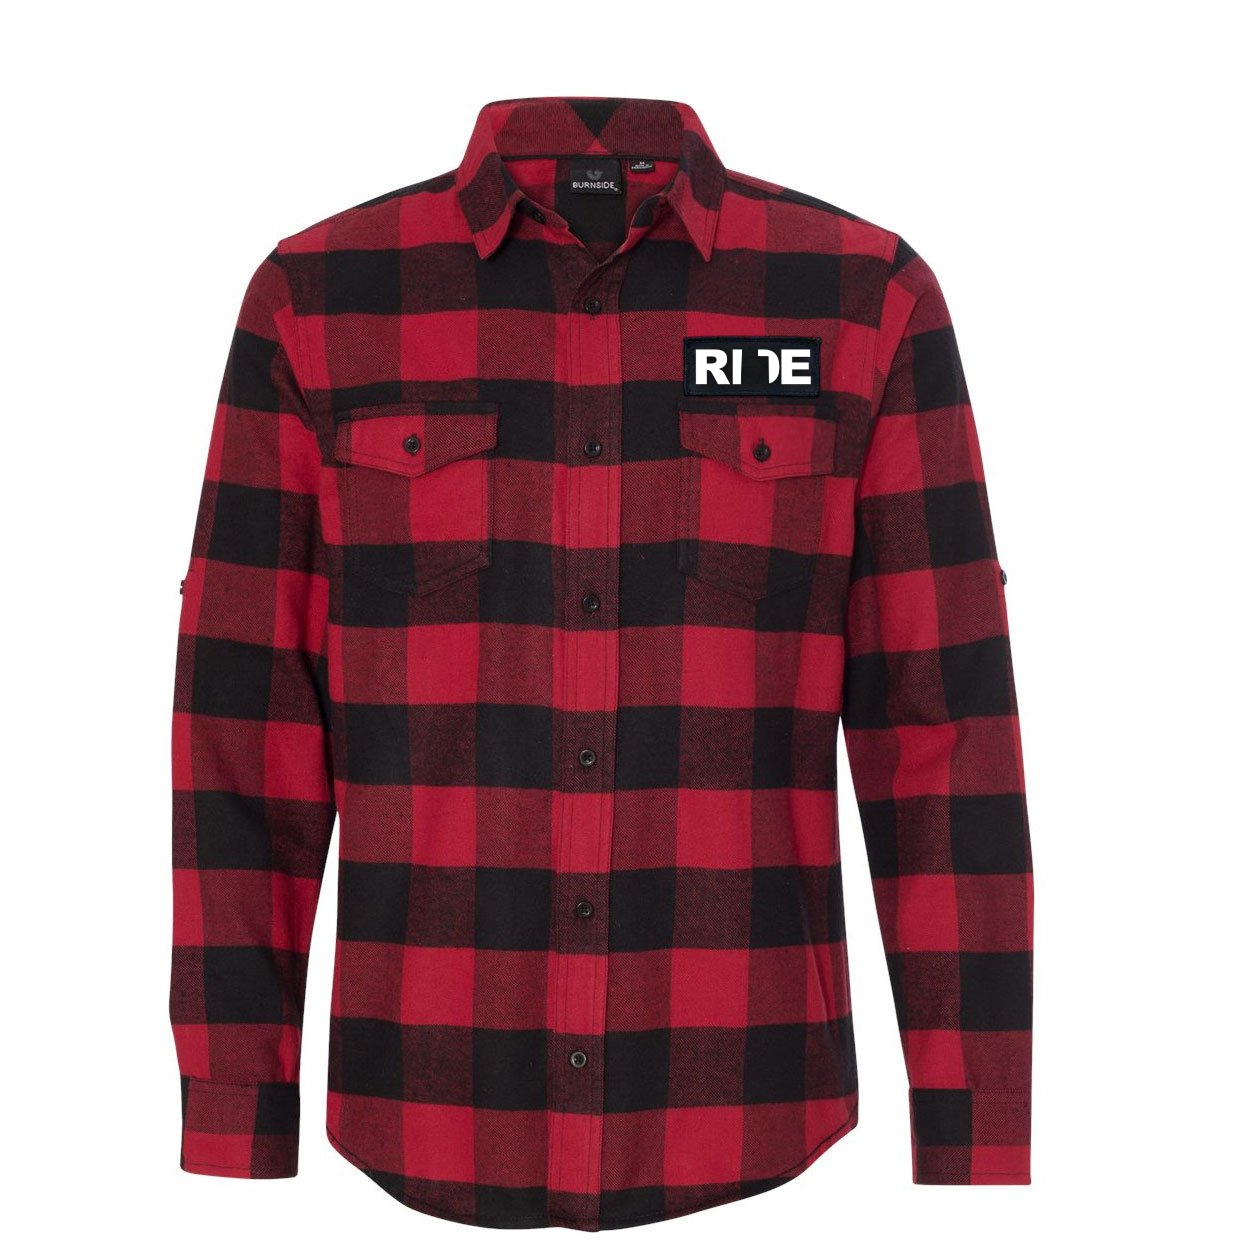 Ride Utah Classic Unisex Long Sleeve Woven Patch Flannel Shirt Red/Black Buffalo (White Logo)